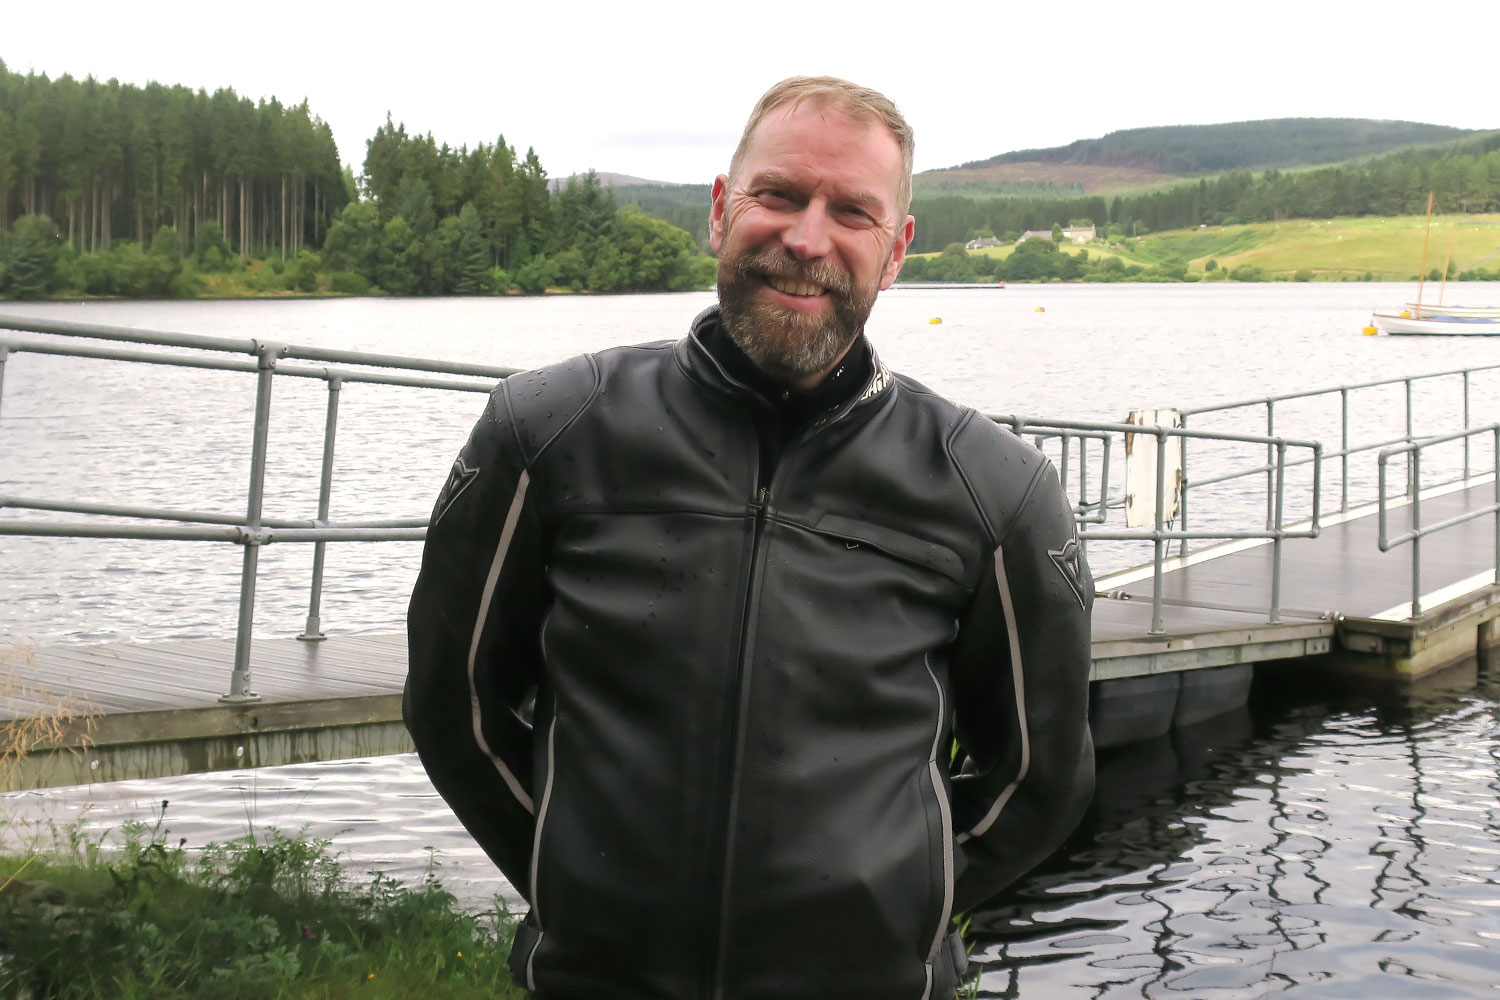 Photo of Derek Digital on a motorcycle tour to Kielder Water in Northumbria